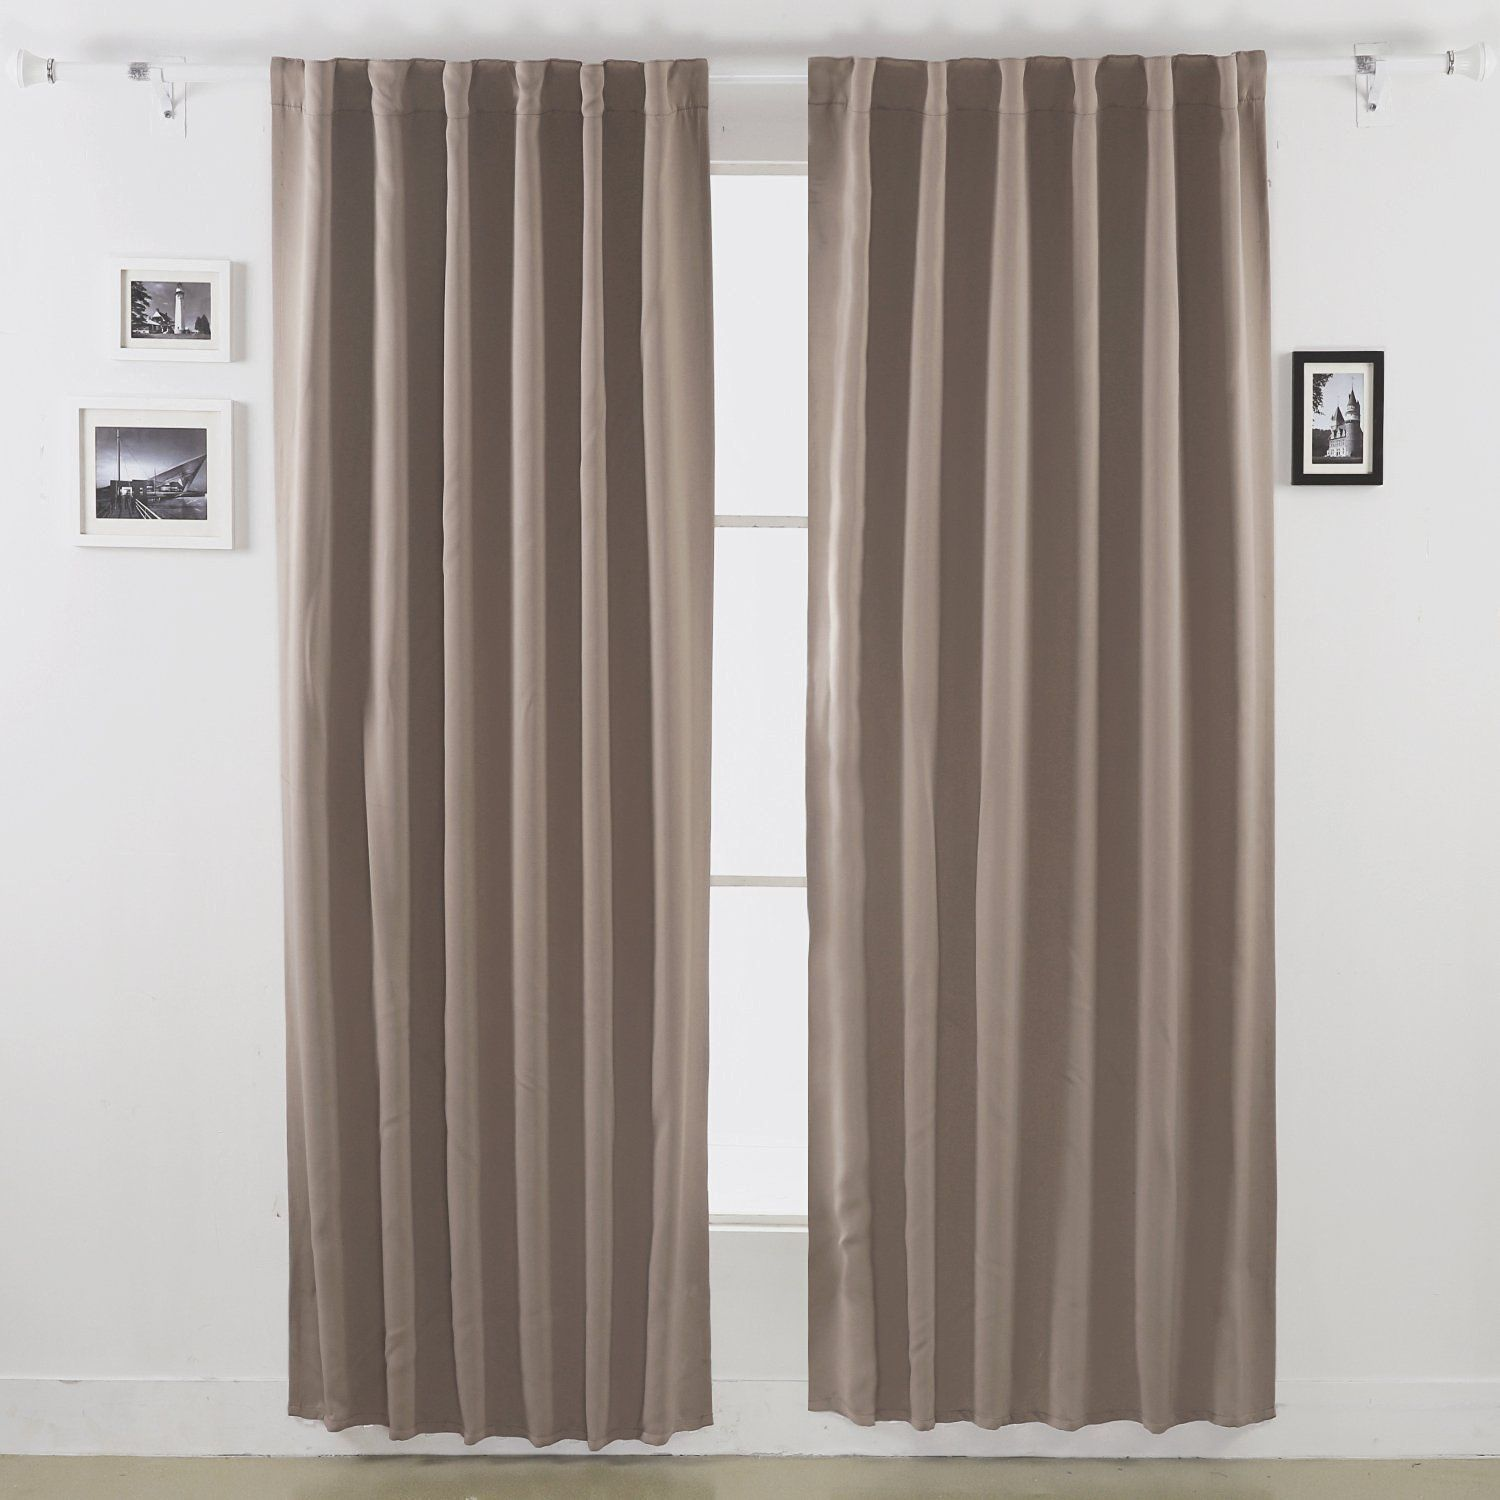 Curtain: Ceiling Track Set Medium For Spaces from Stunning Curtain ...